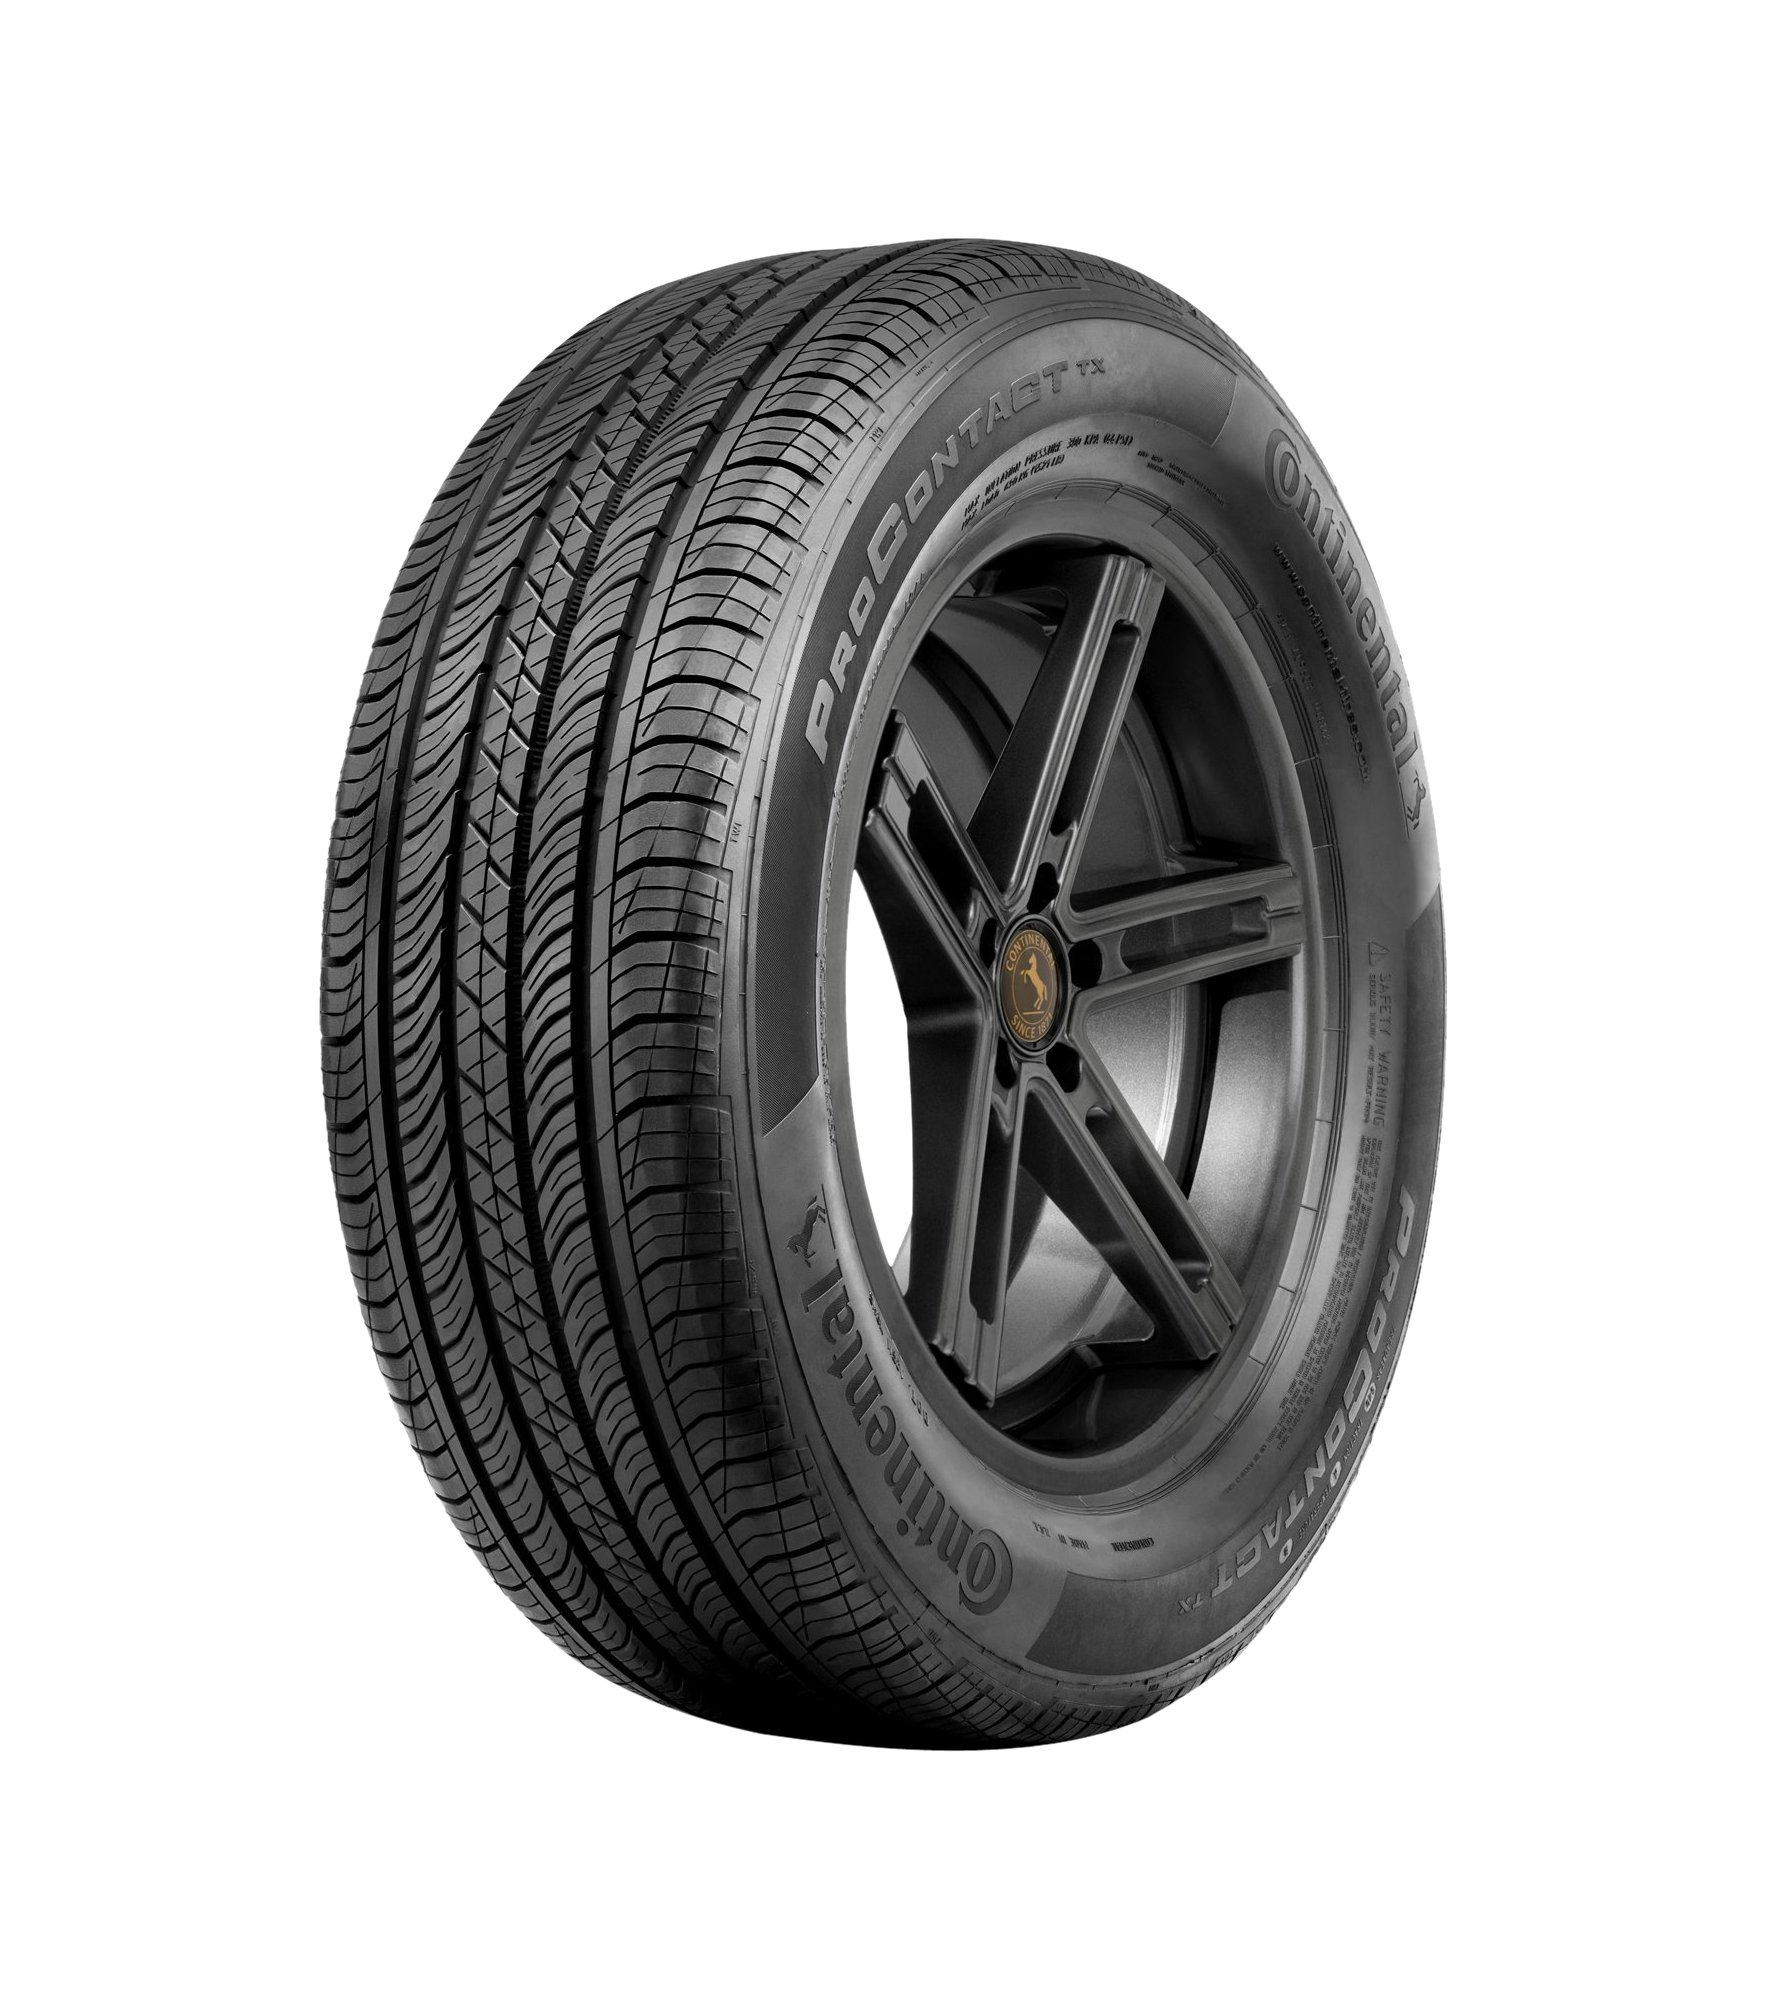 Continental ProContact TX Touring Radial Tire -195/65R15 91H